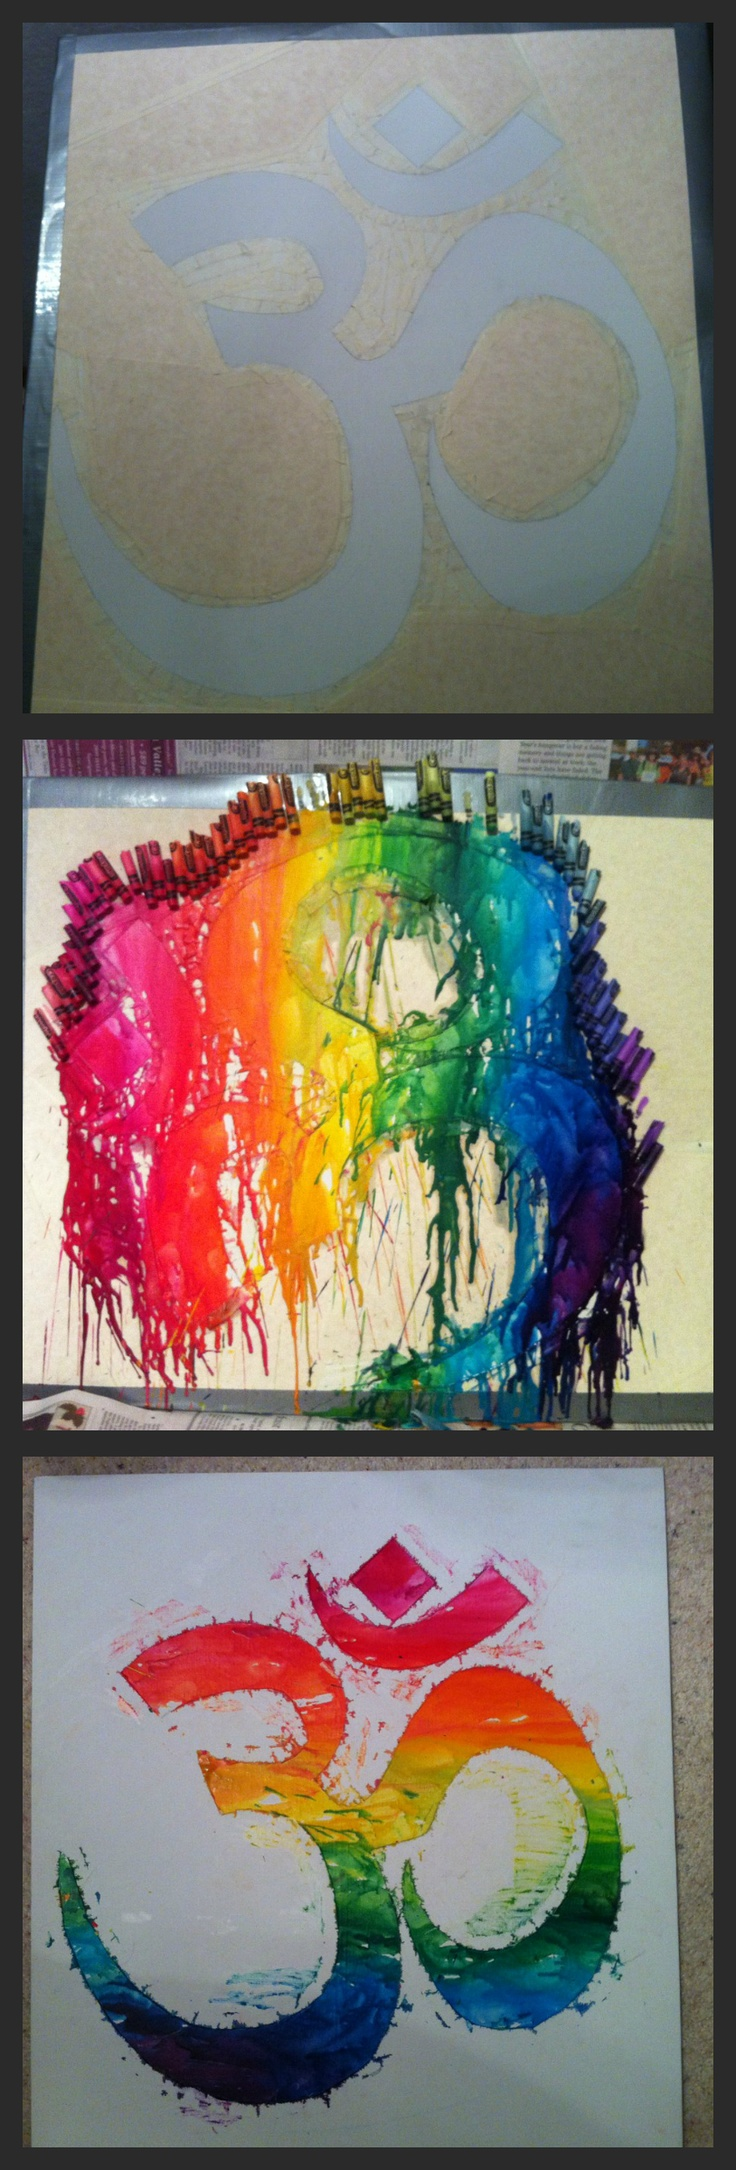 Crayon melting art images amp pictures becuo - My Crayon Melting